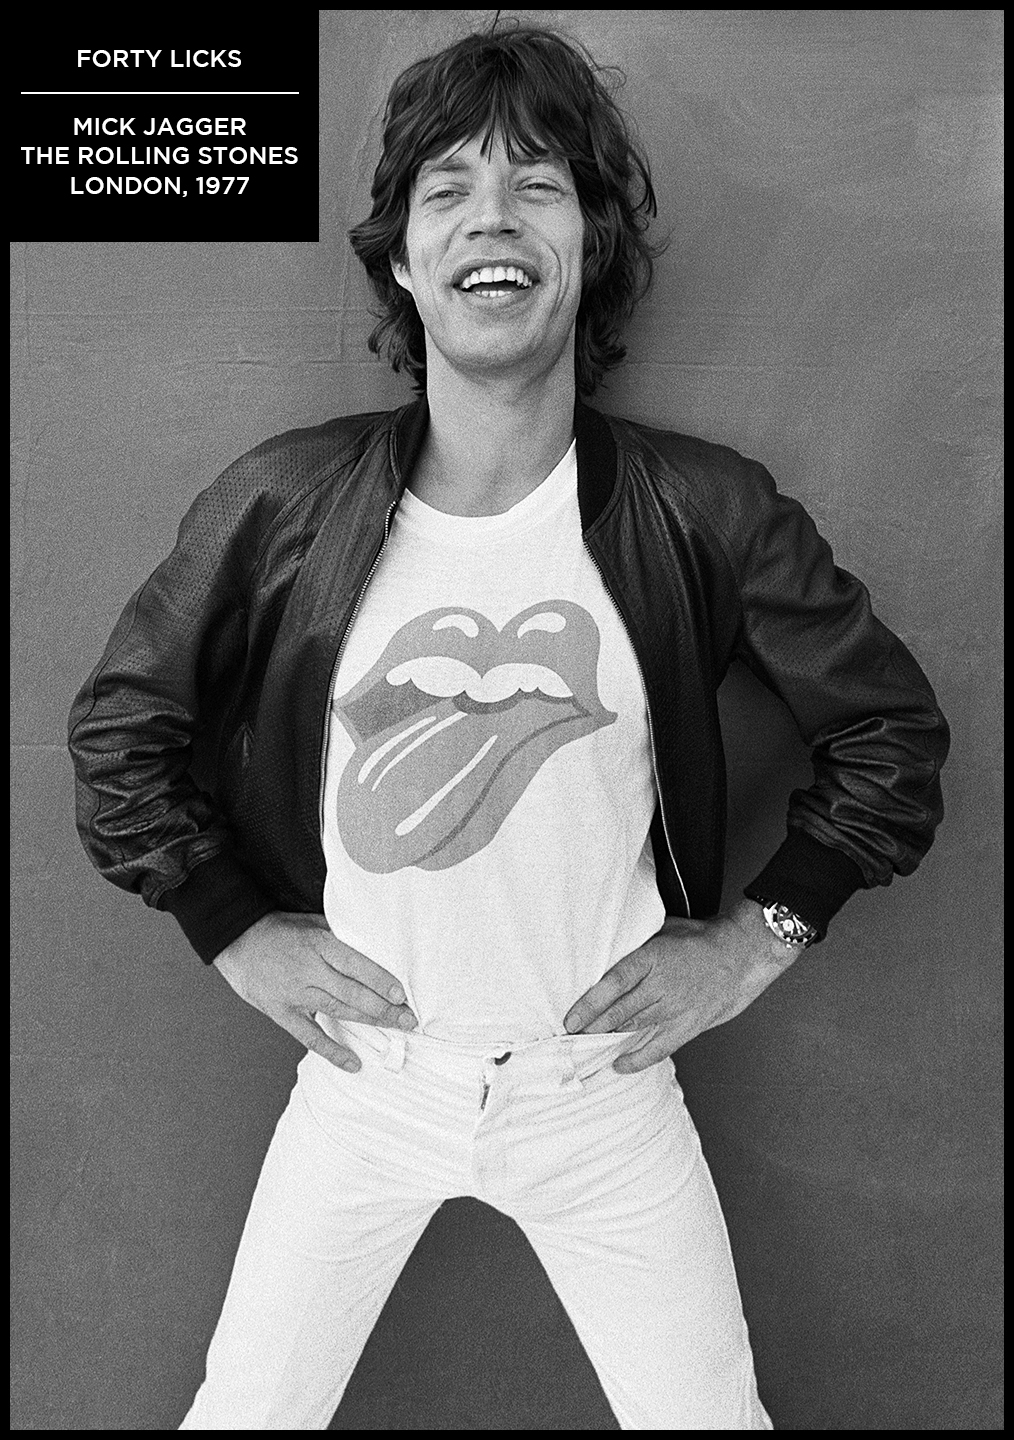 FORTY LICKS | MICK JAGGER | THE ROLLING STONES | LONDON 1977